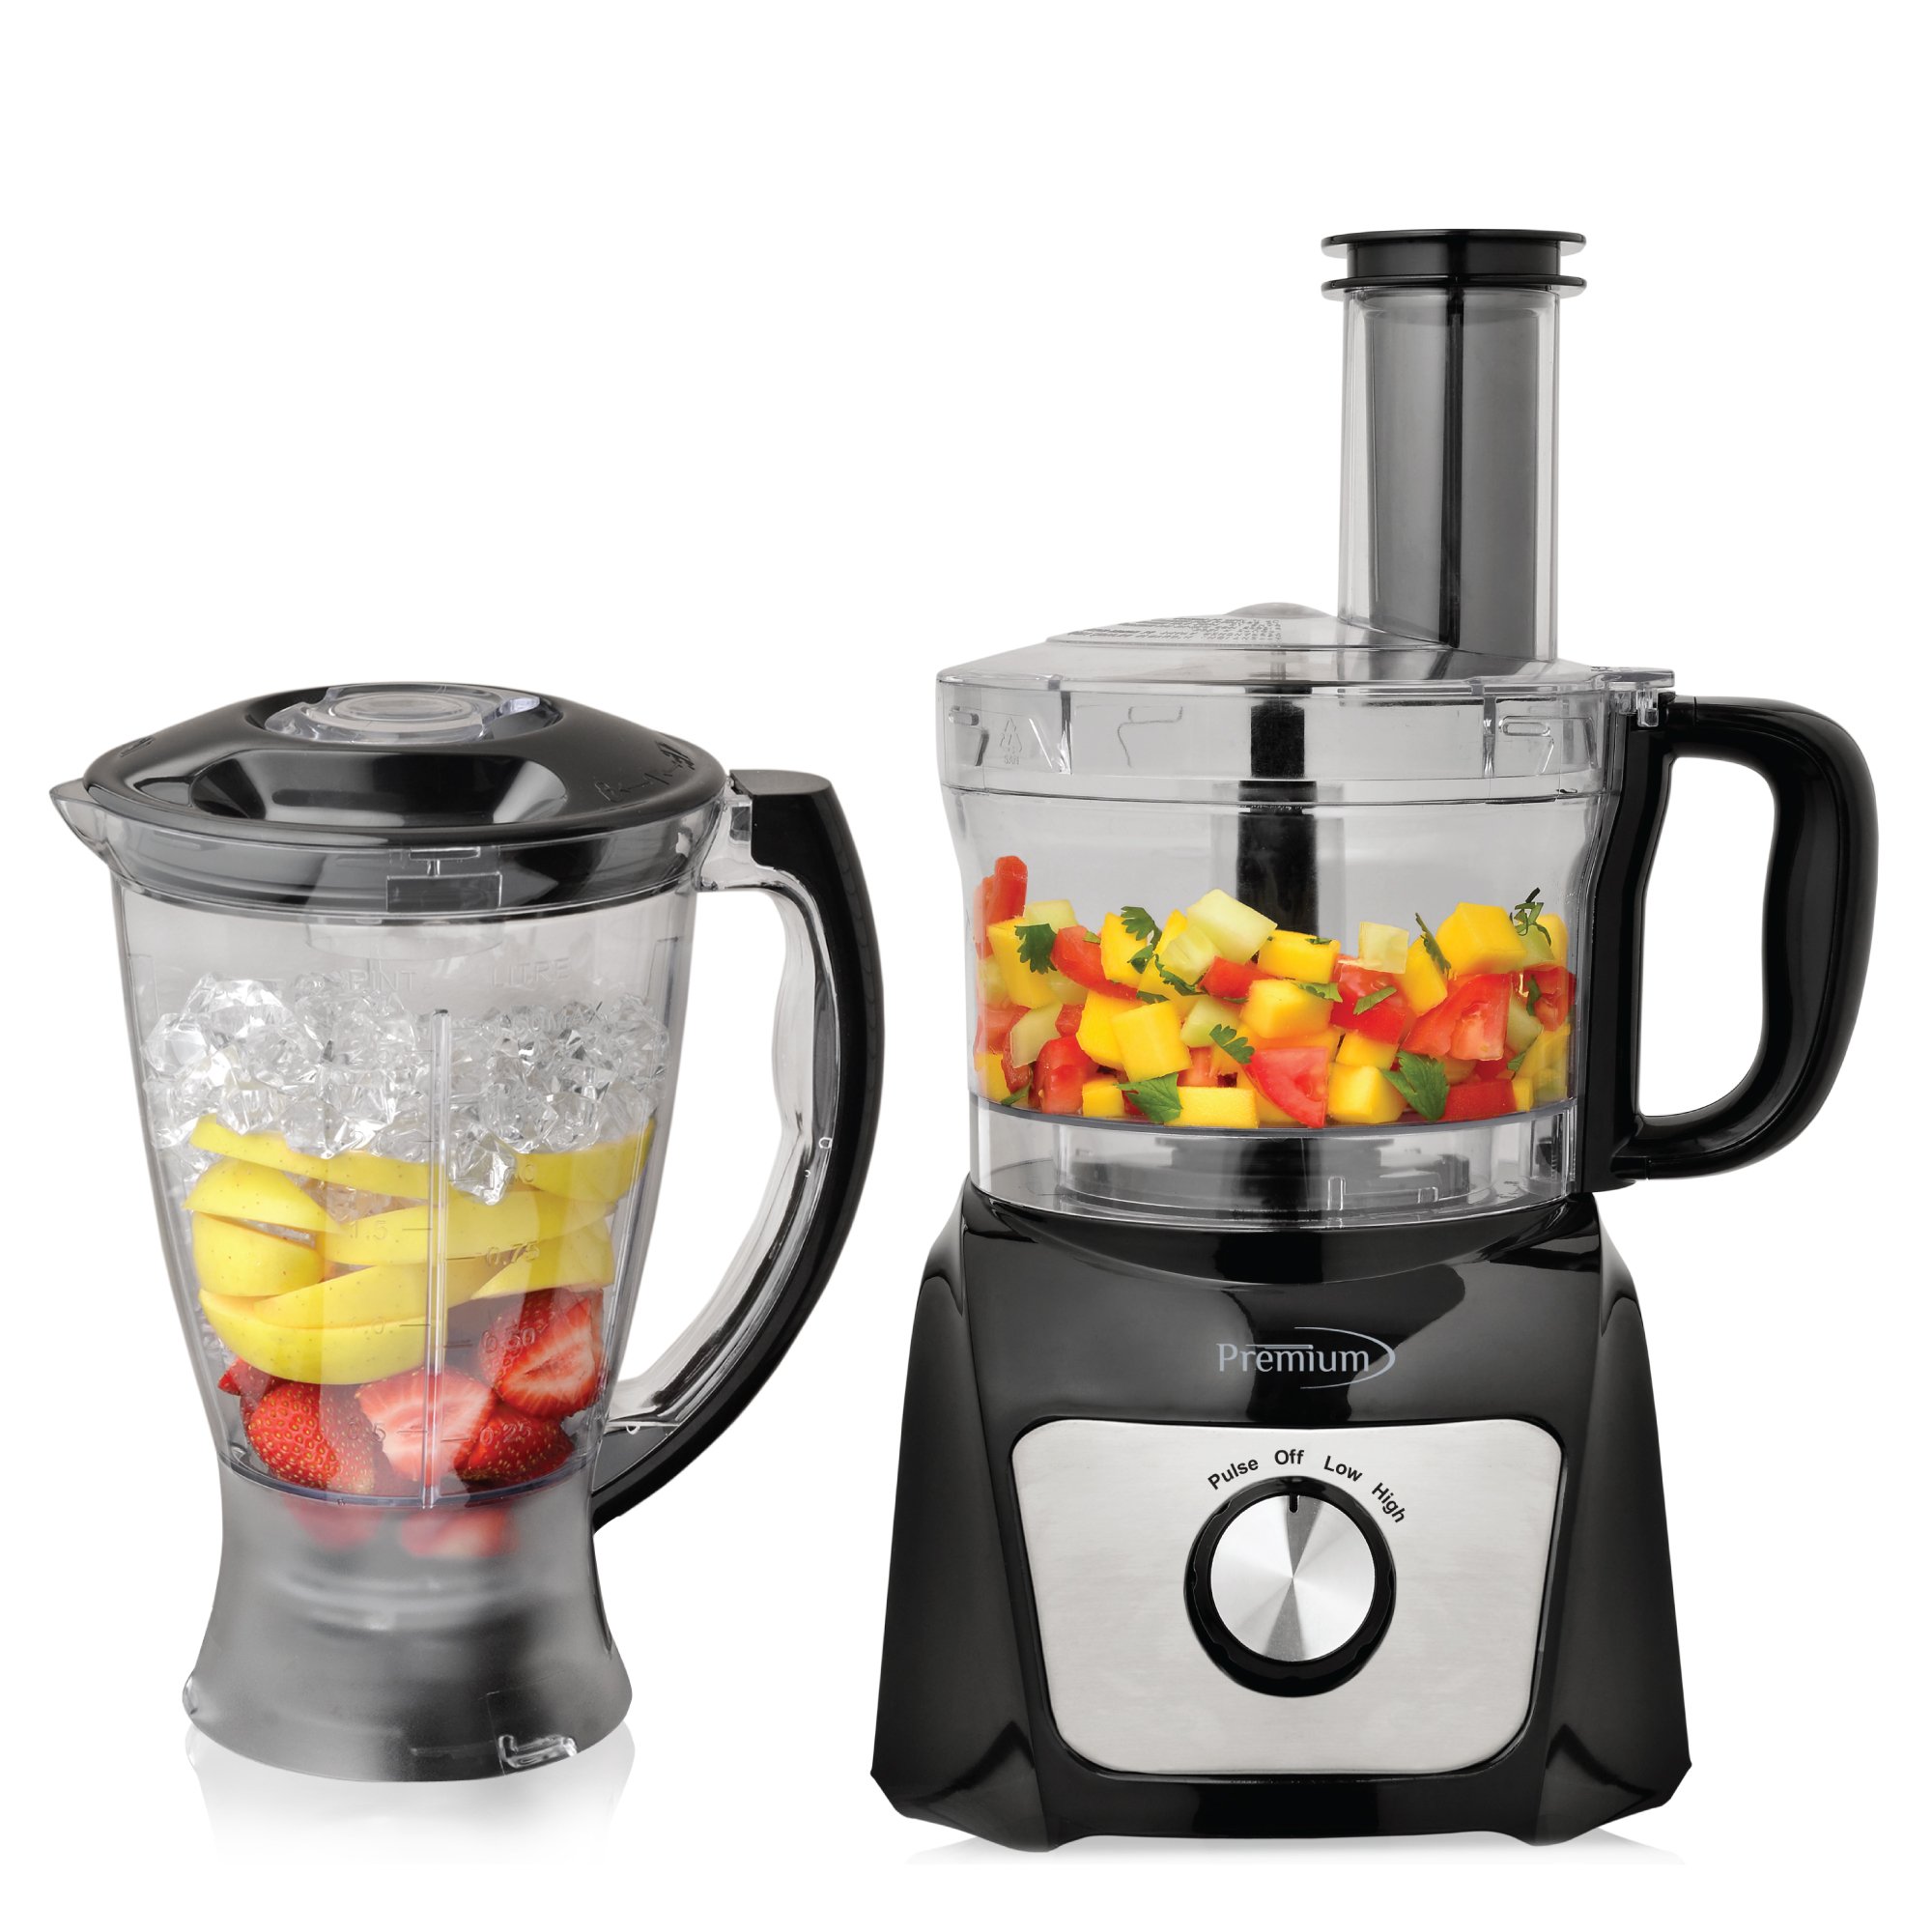 premium appliances food processor blender. Black Bedroom Furniture Sets. Home Design Ideas